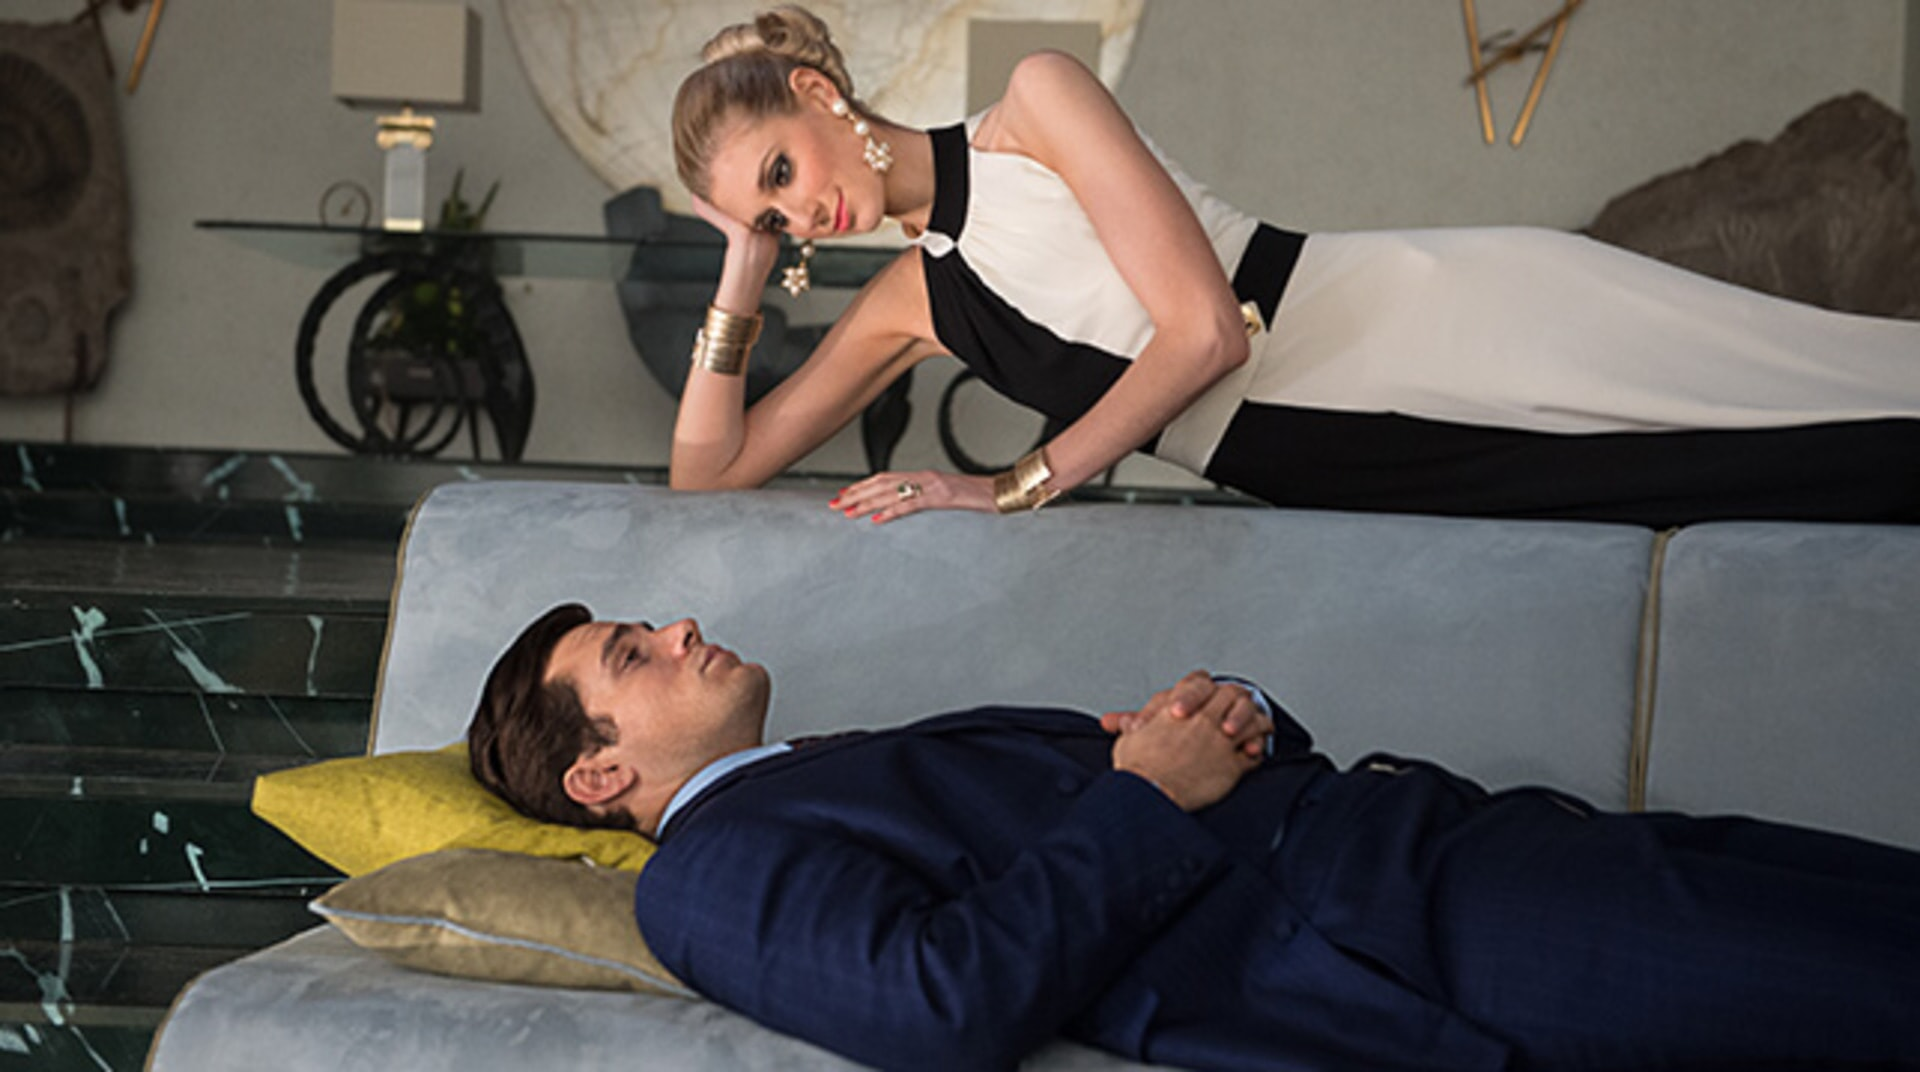 The Man From U.N.C.L.E. - Image 26